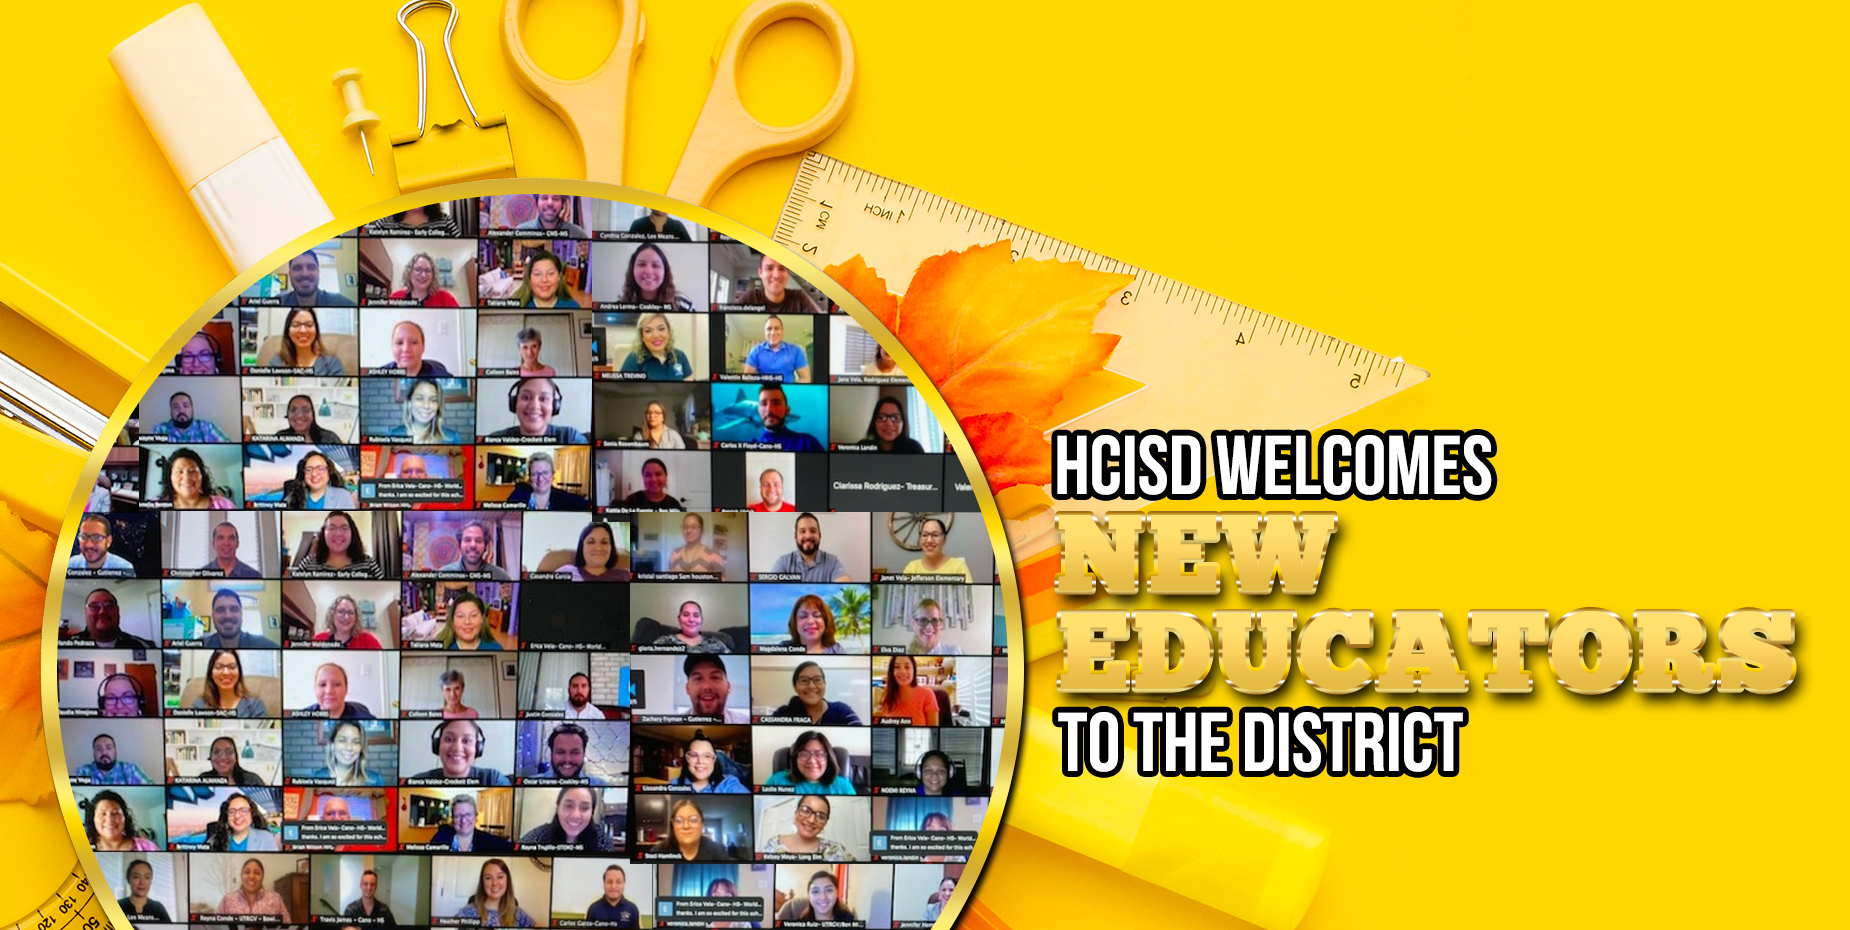 HCISD welcomes new educators to the district